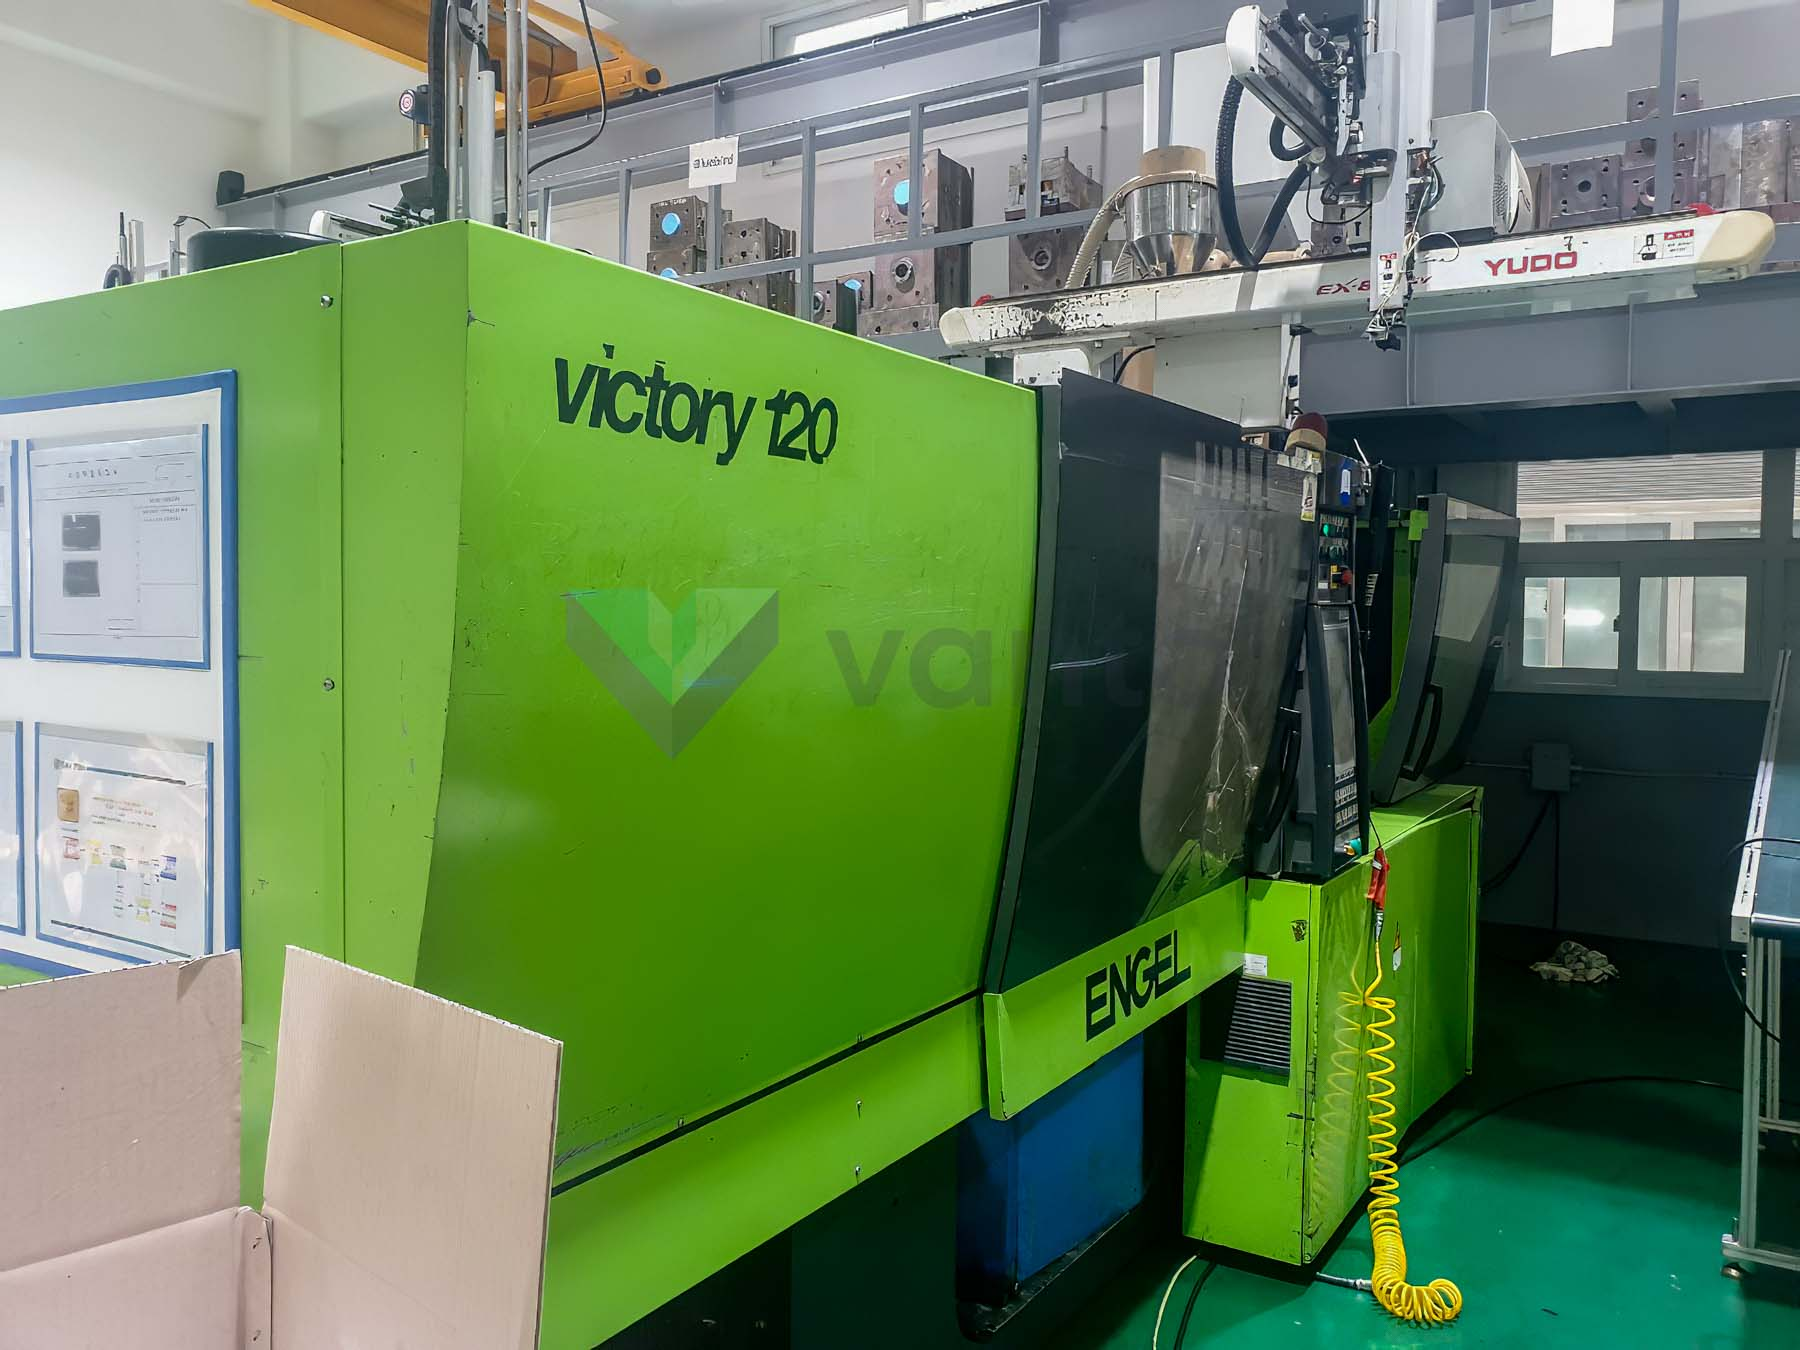 ENGEL VICTORY VC 200 / 120 TECH PRO 120t injection molding machine (2009) id10380